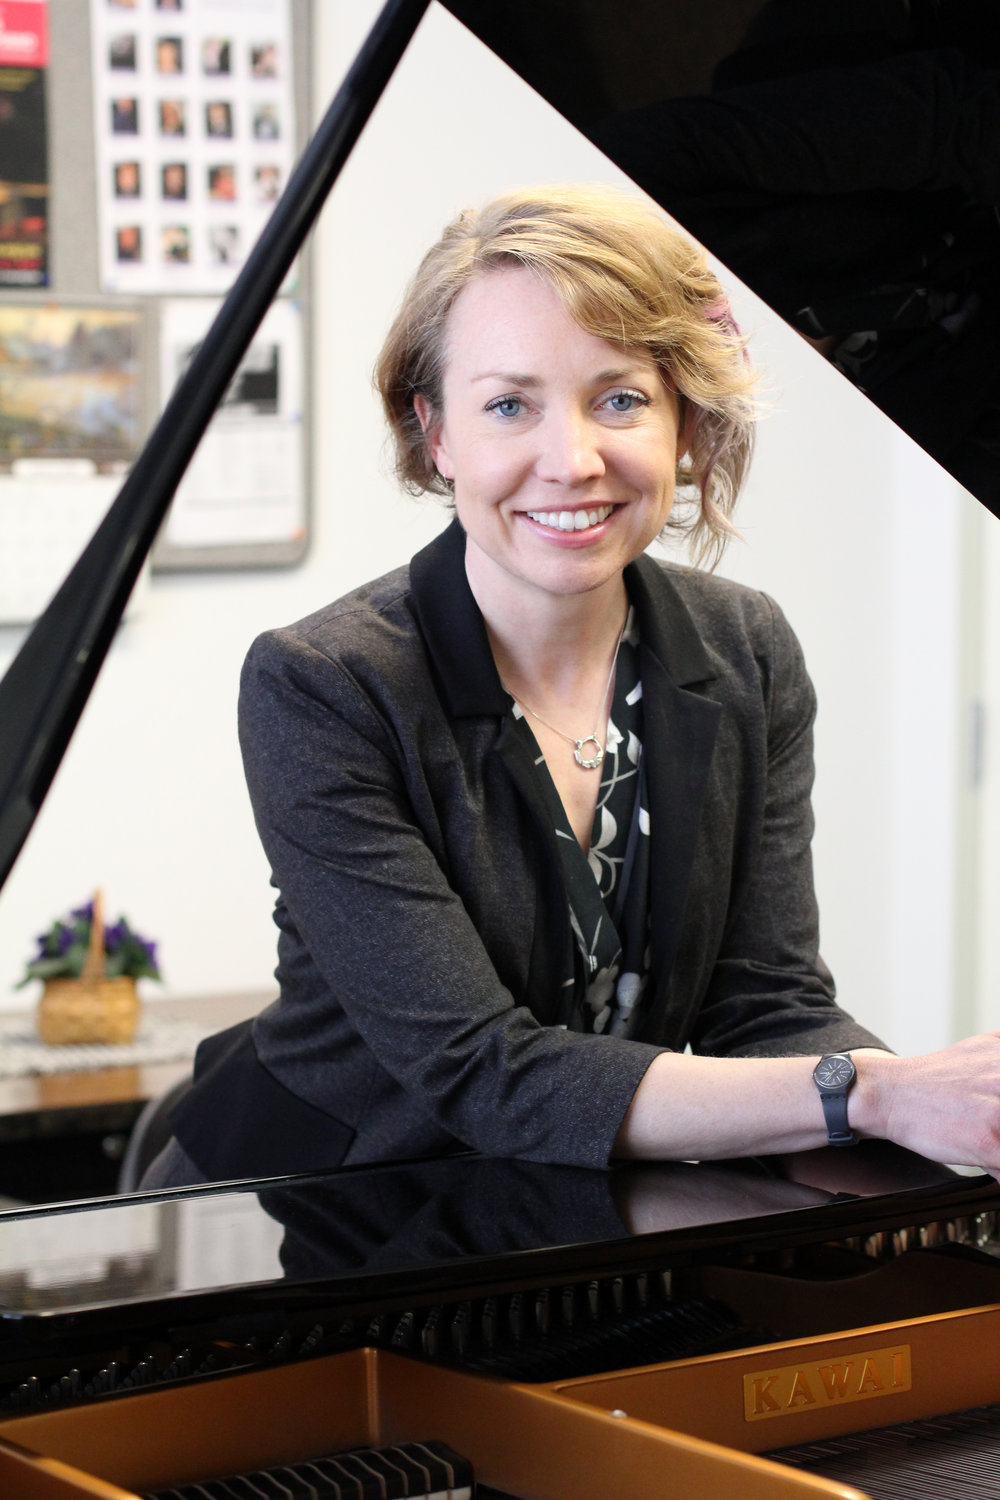 Aubrey Faith-Slaker - PIANO, SUZUKI PIANOPianist Aubrey Faith-Slaker is an established and dedicated music educator in the Chicagoland area, teaching students ages 3 and up in English and in Spanish using both Suzuki and Traditional Philosophies. She has maintained a flourishing piano studio in Texas, Wyoming, Colorado, and currently Chicago, teaching piano, music history, music theory and piano pedagogy to students of all ages. Aubrey also works mentoring new teachers in piano pedagogy practices, pursuing further education and starting their own businesses. Aubrey teaches Masterclasses in Chicago and Latin America, is part of the Suzuki Association, is MTNA certified, and is steadily working on completing her studies towards becoming a Suzuki teacher trainer.